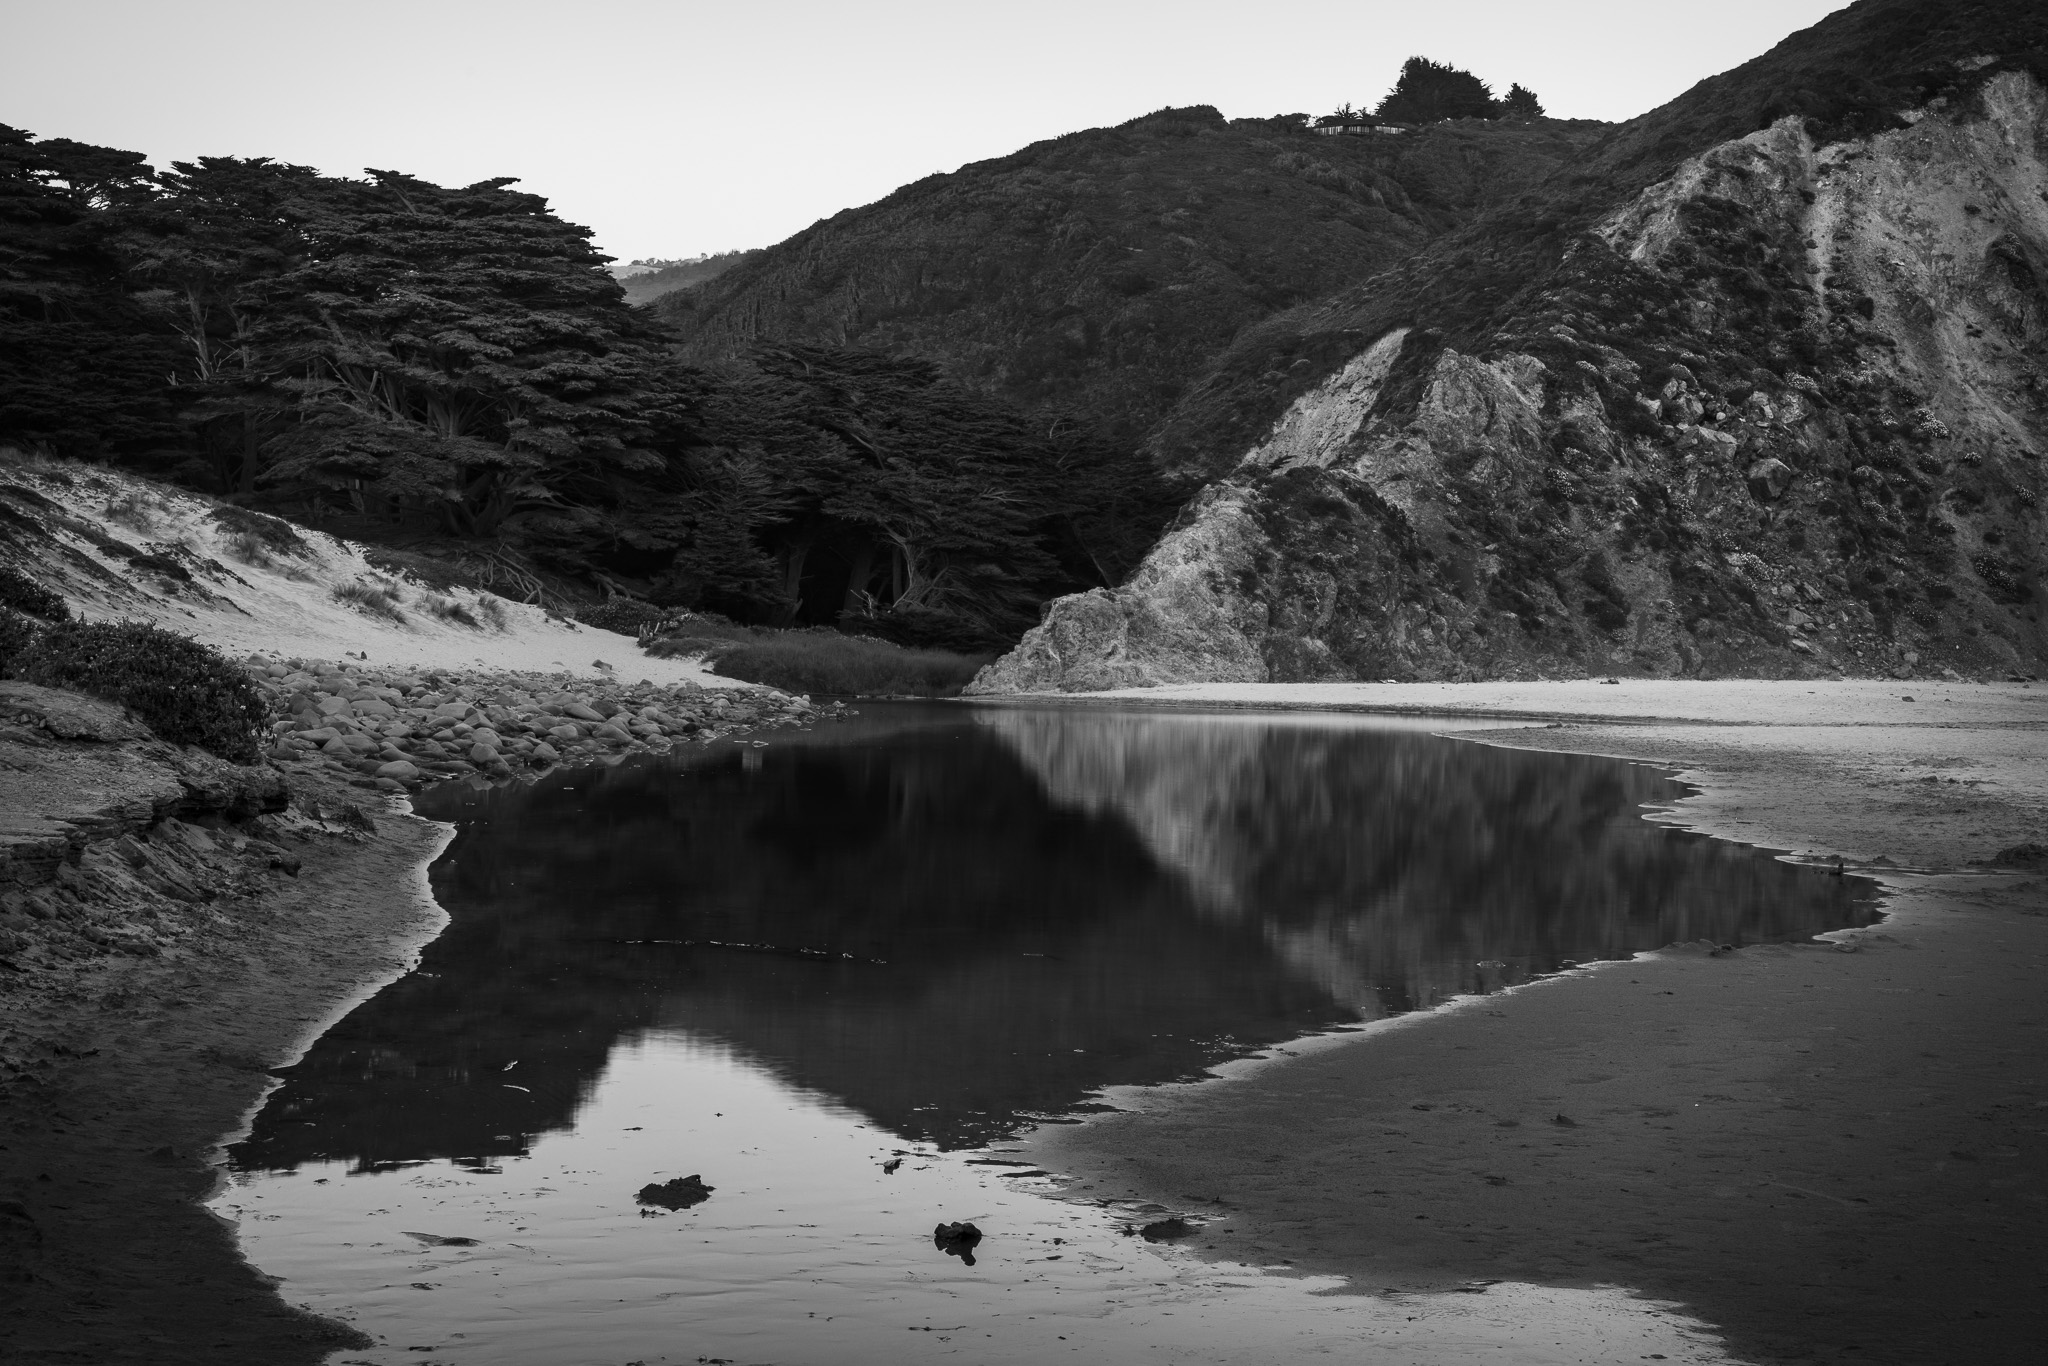 Reflections in a pool at Pfeiffer Beach, Big Sur